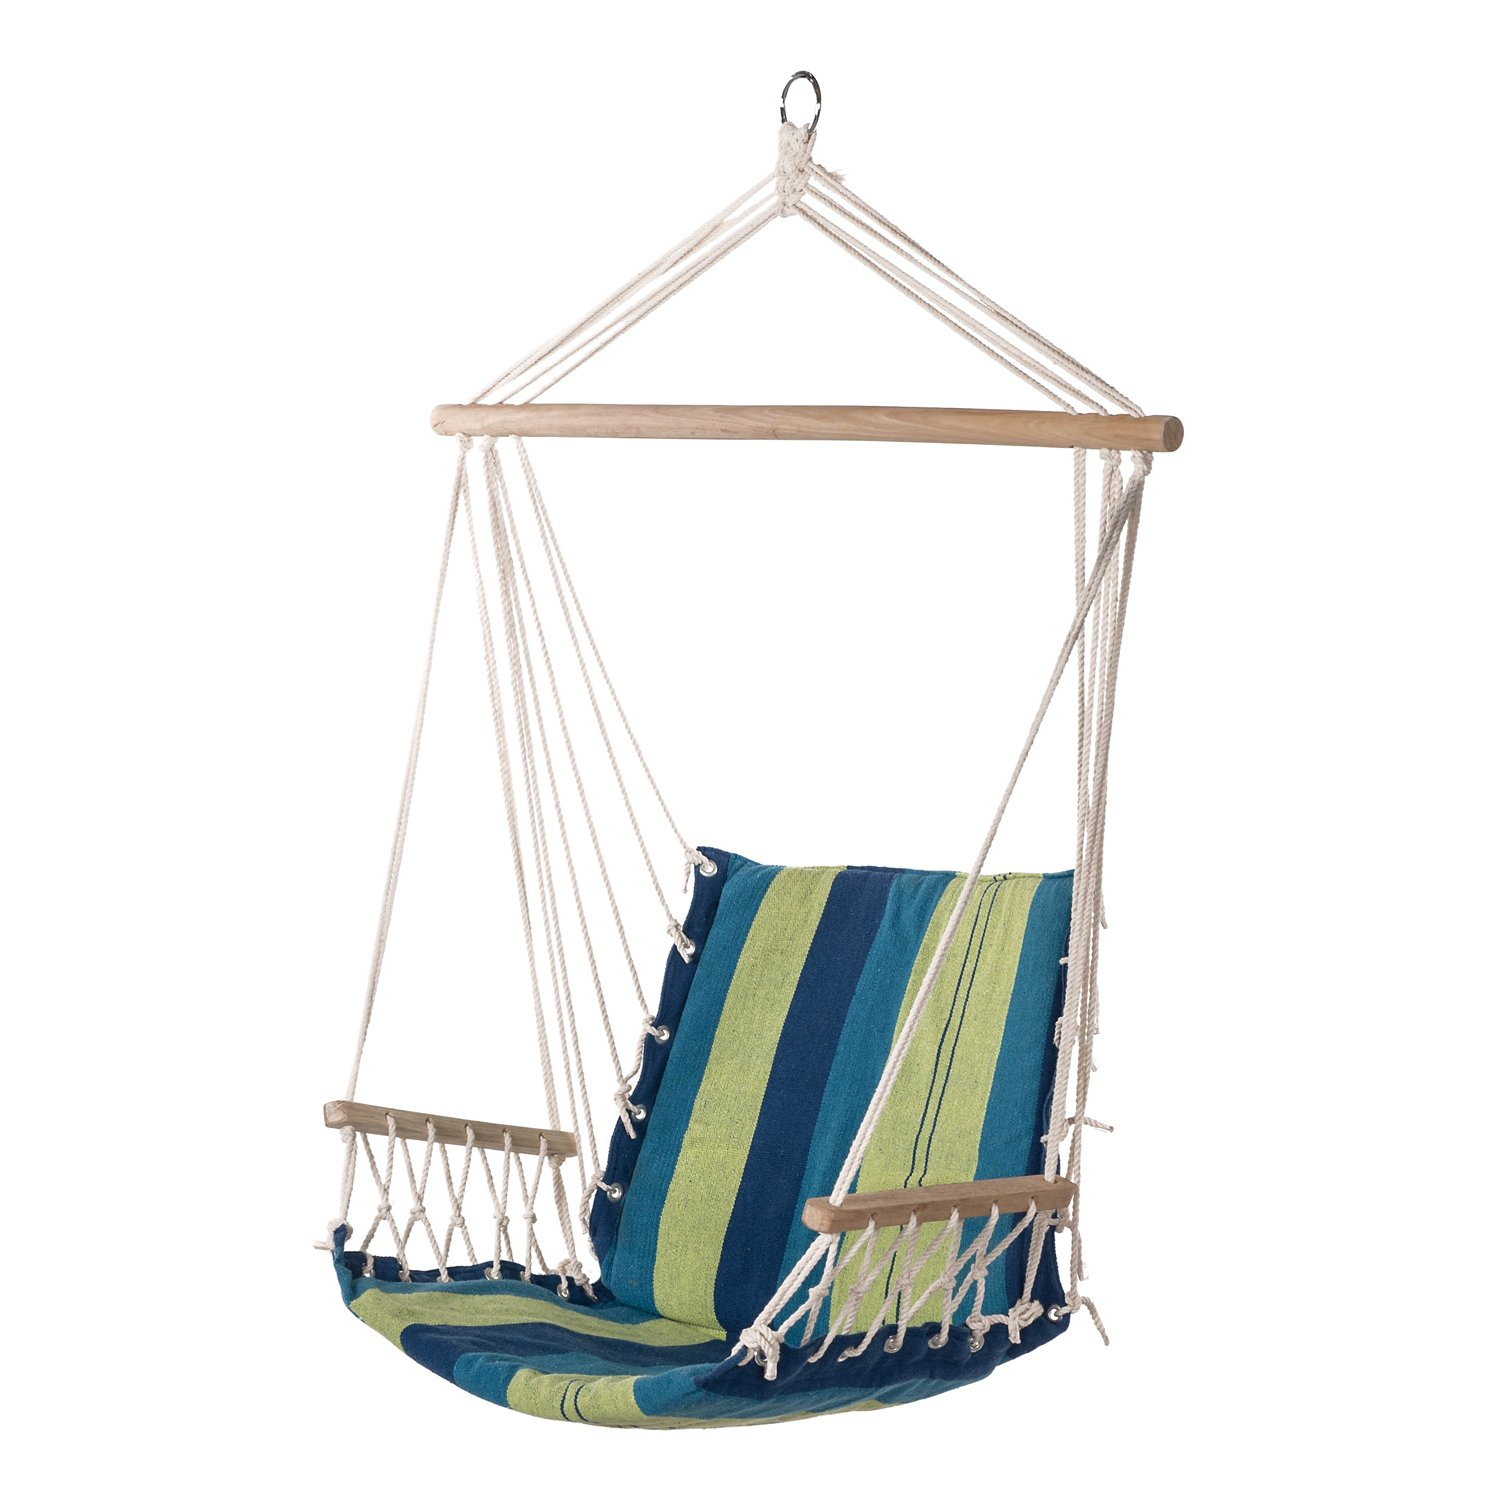 Cheap Padded Swing Chair Find Padded Swing Chair Deals On Line At